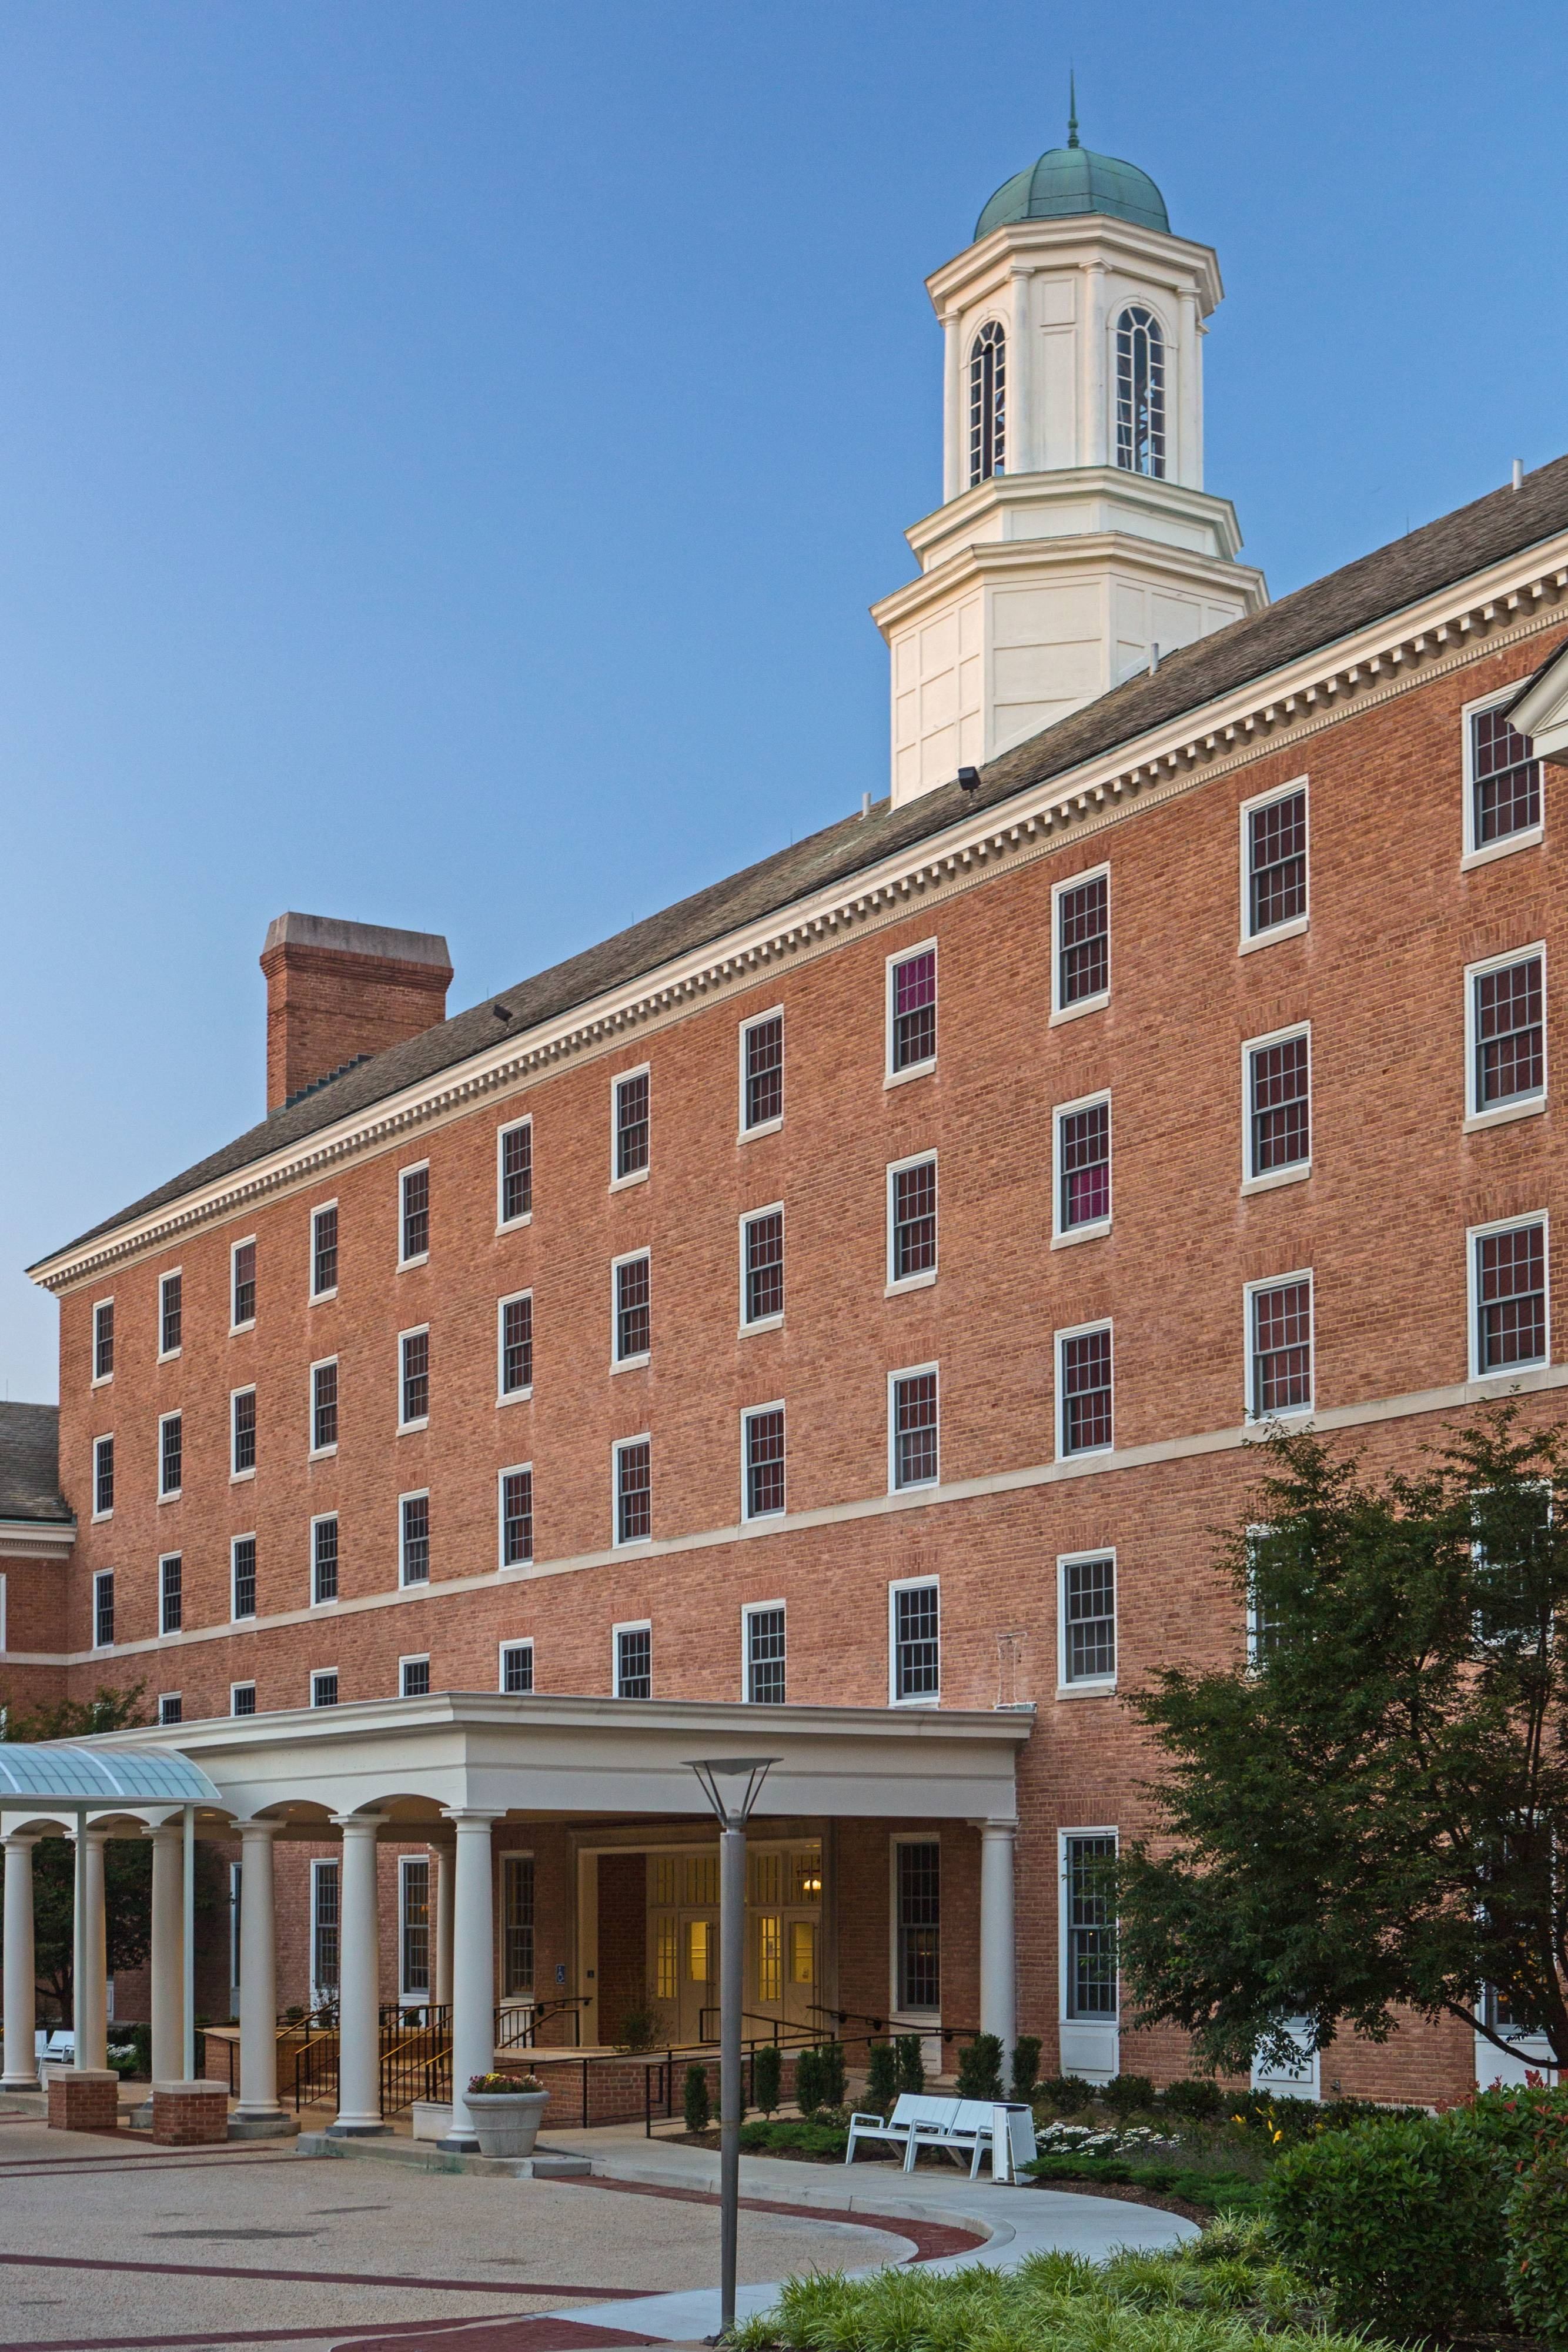 College Park Maryland hotel exterior